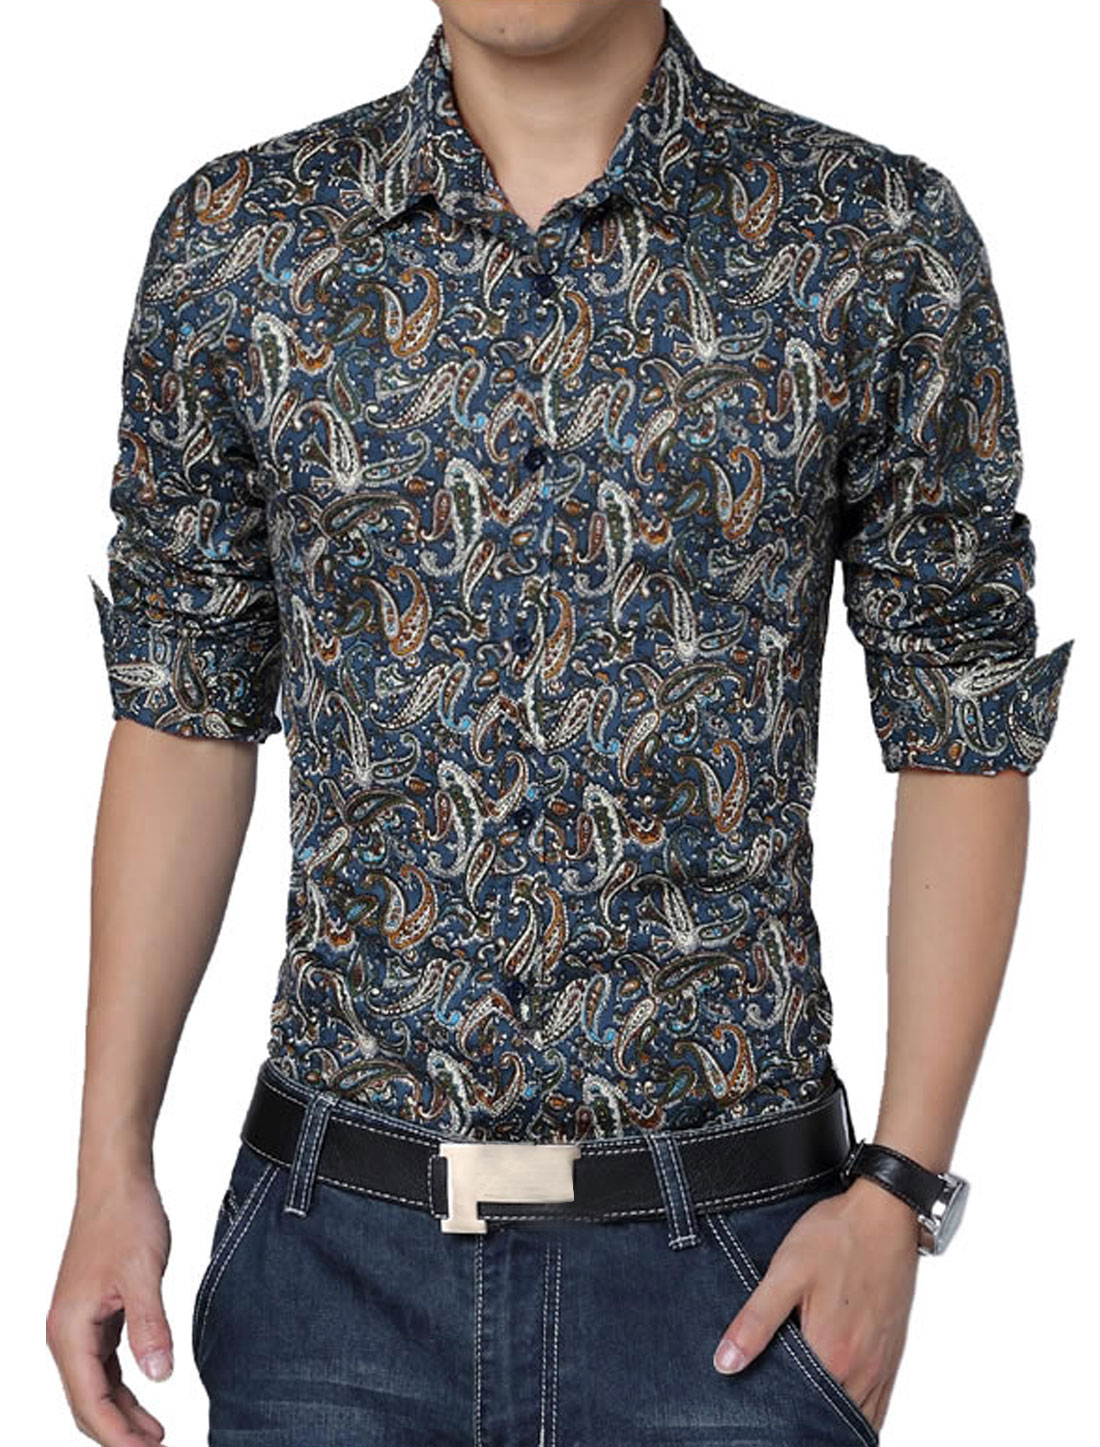 Men Long Sleeve Button Closure Front Paisleys Casual Shirt Navy Blue M